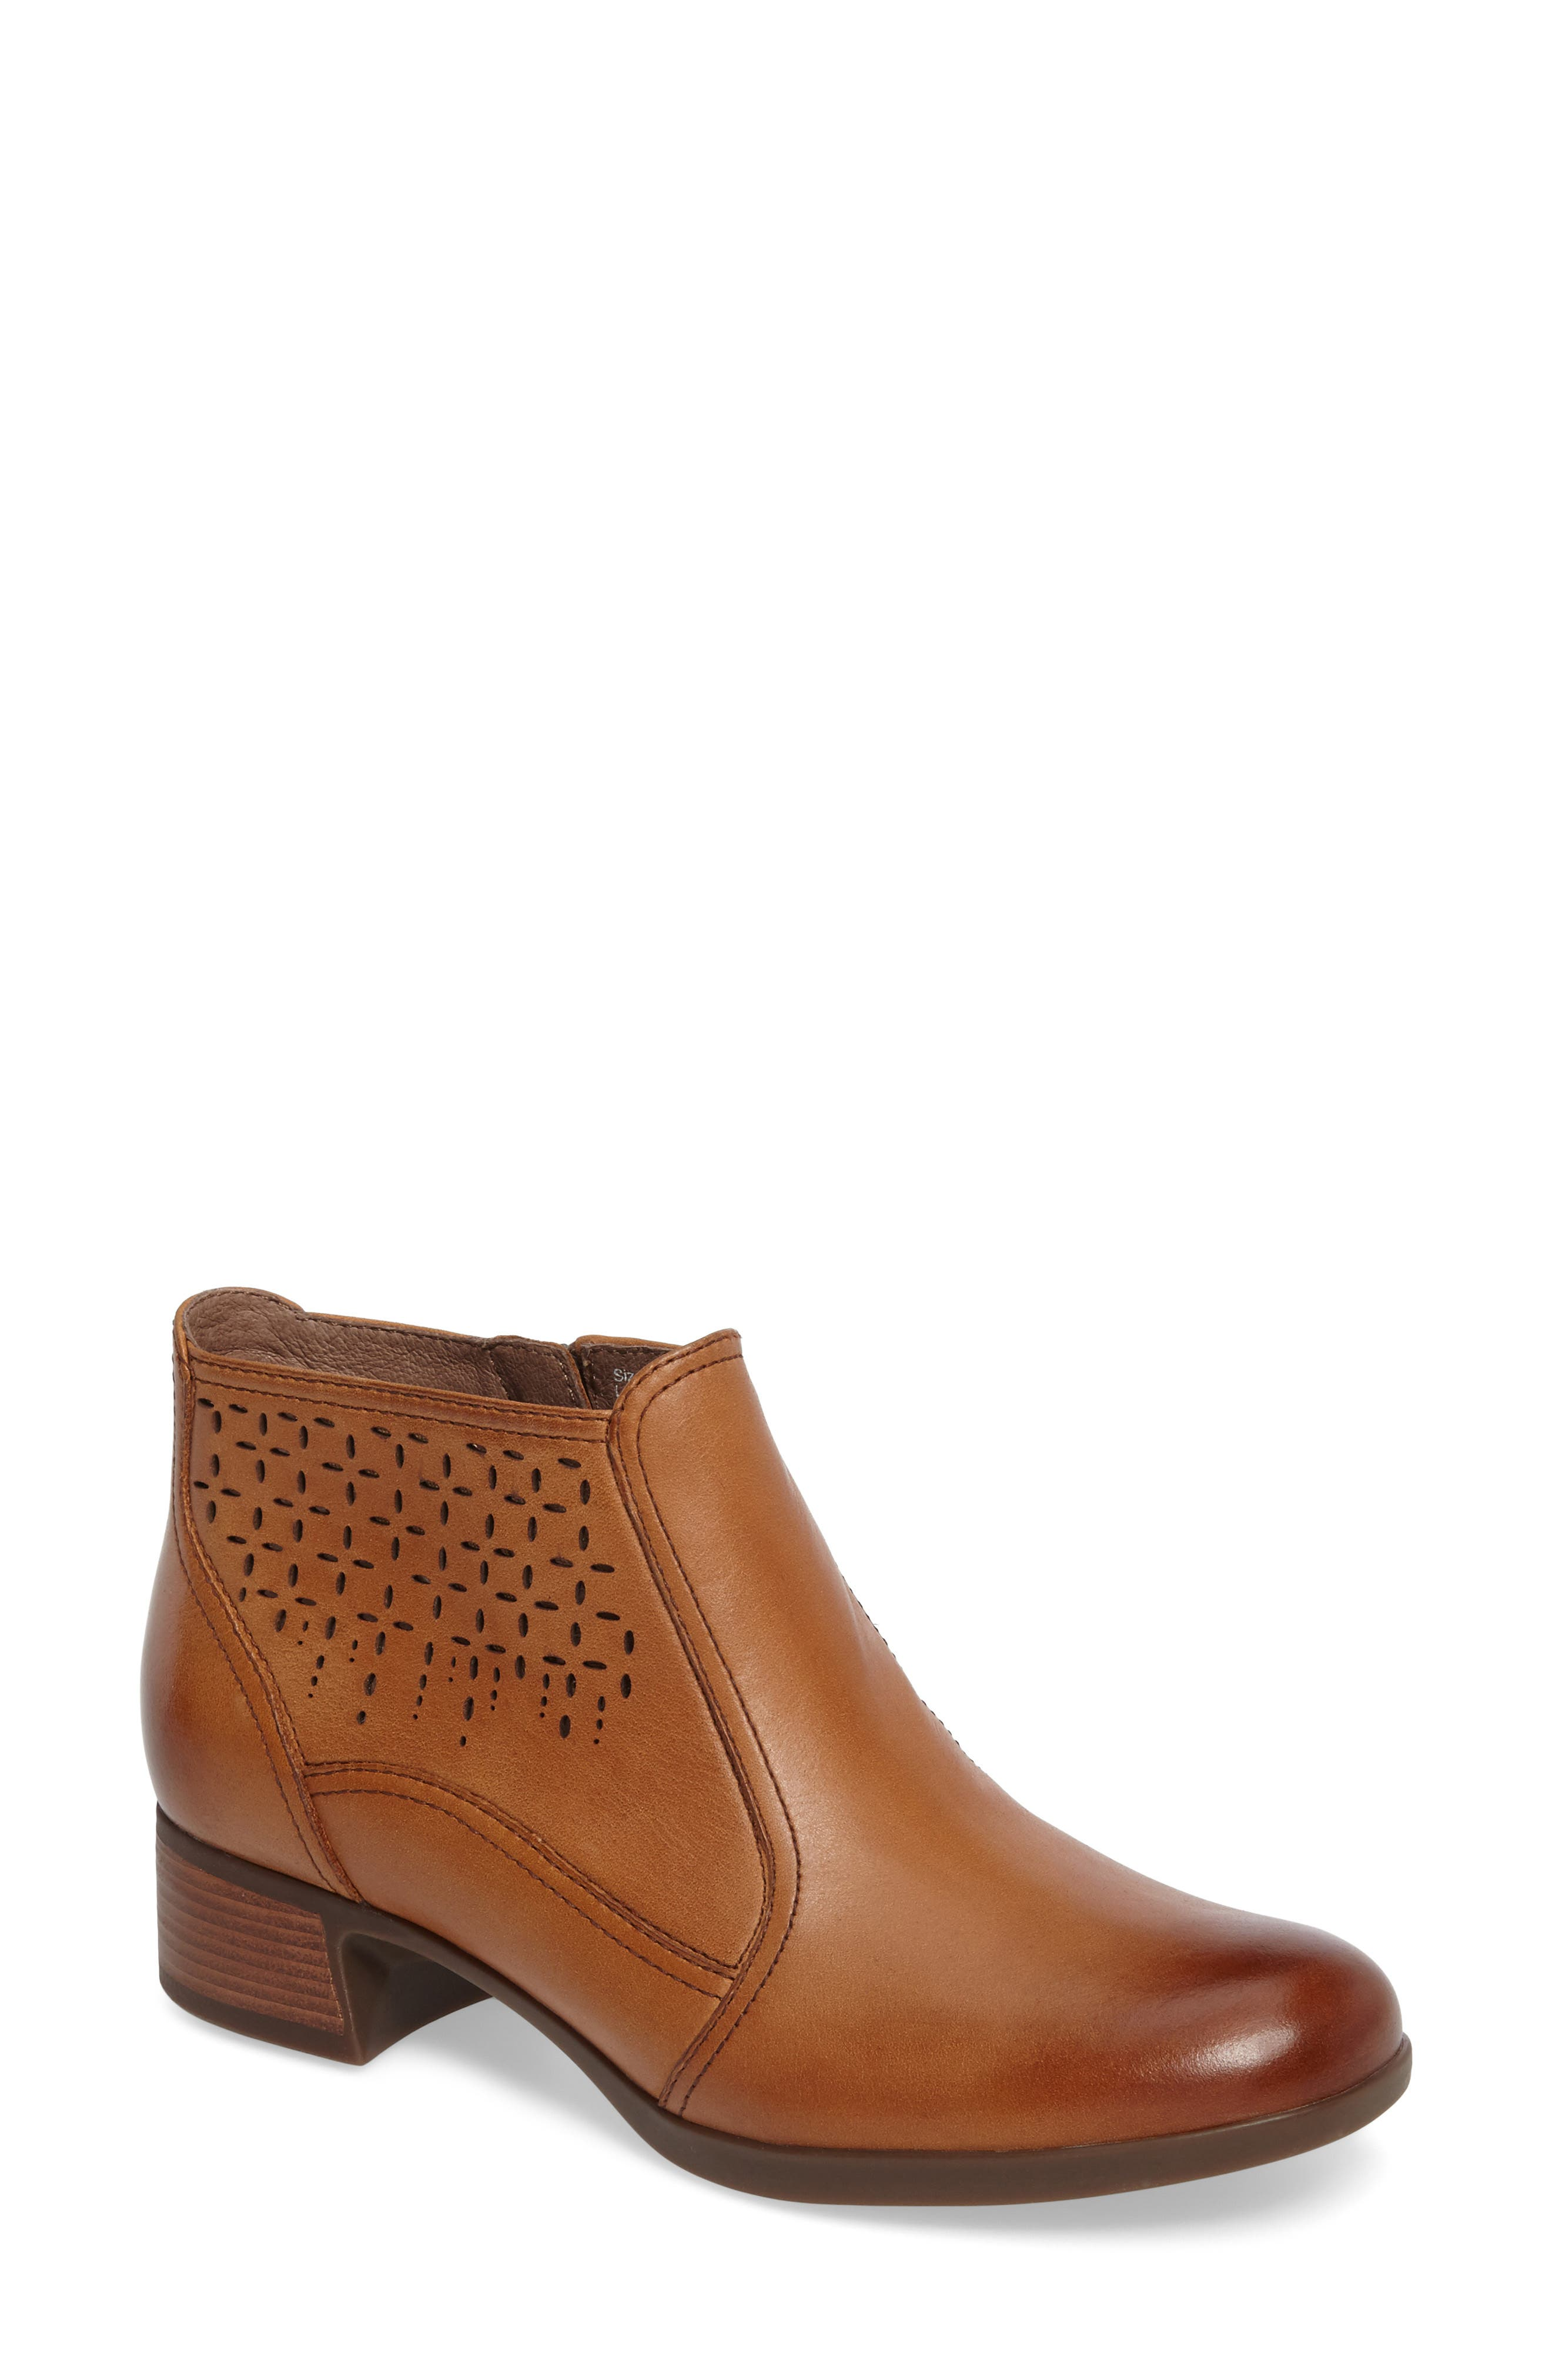 Dansko Liberty Laser Cut Bootie (Women)